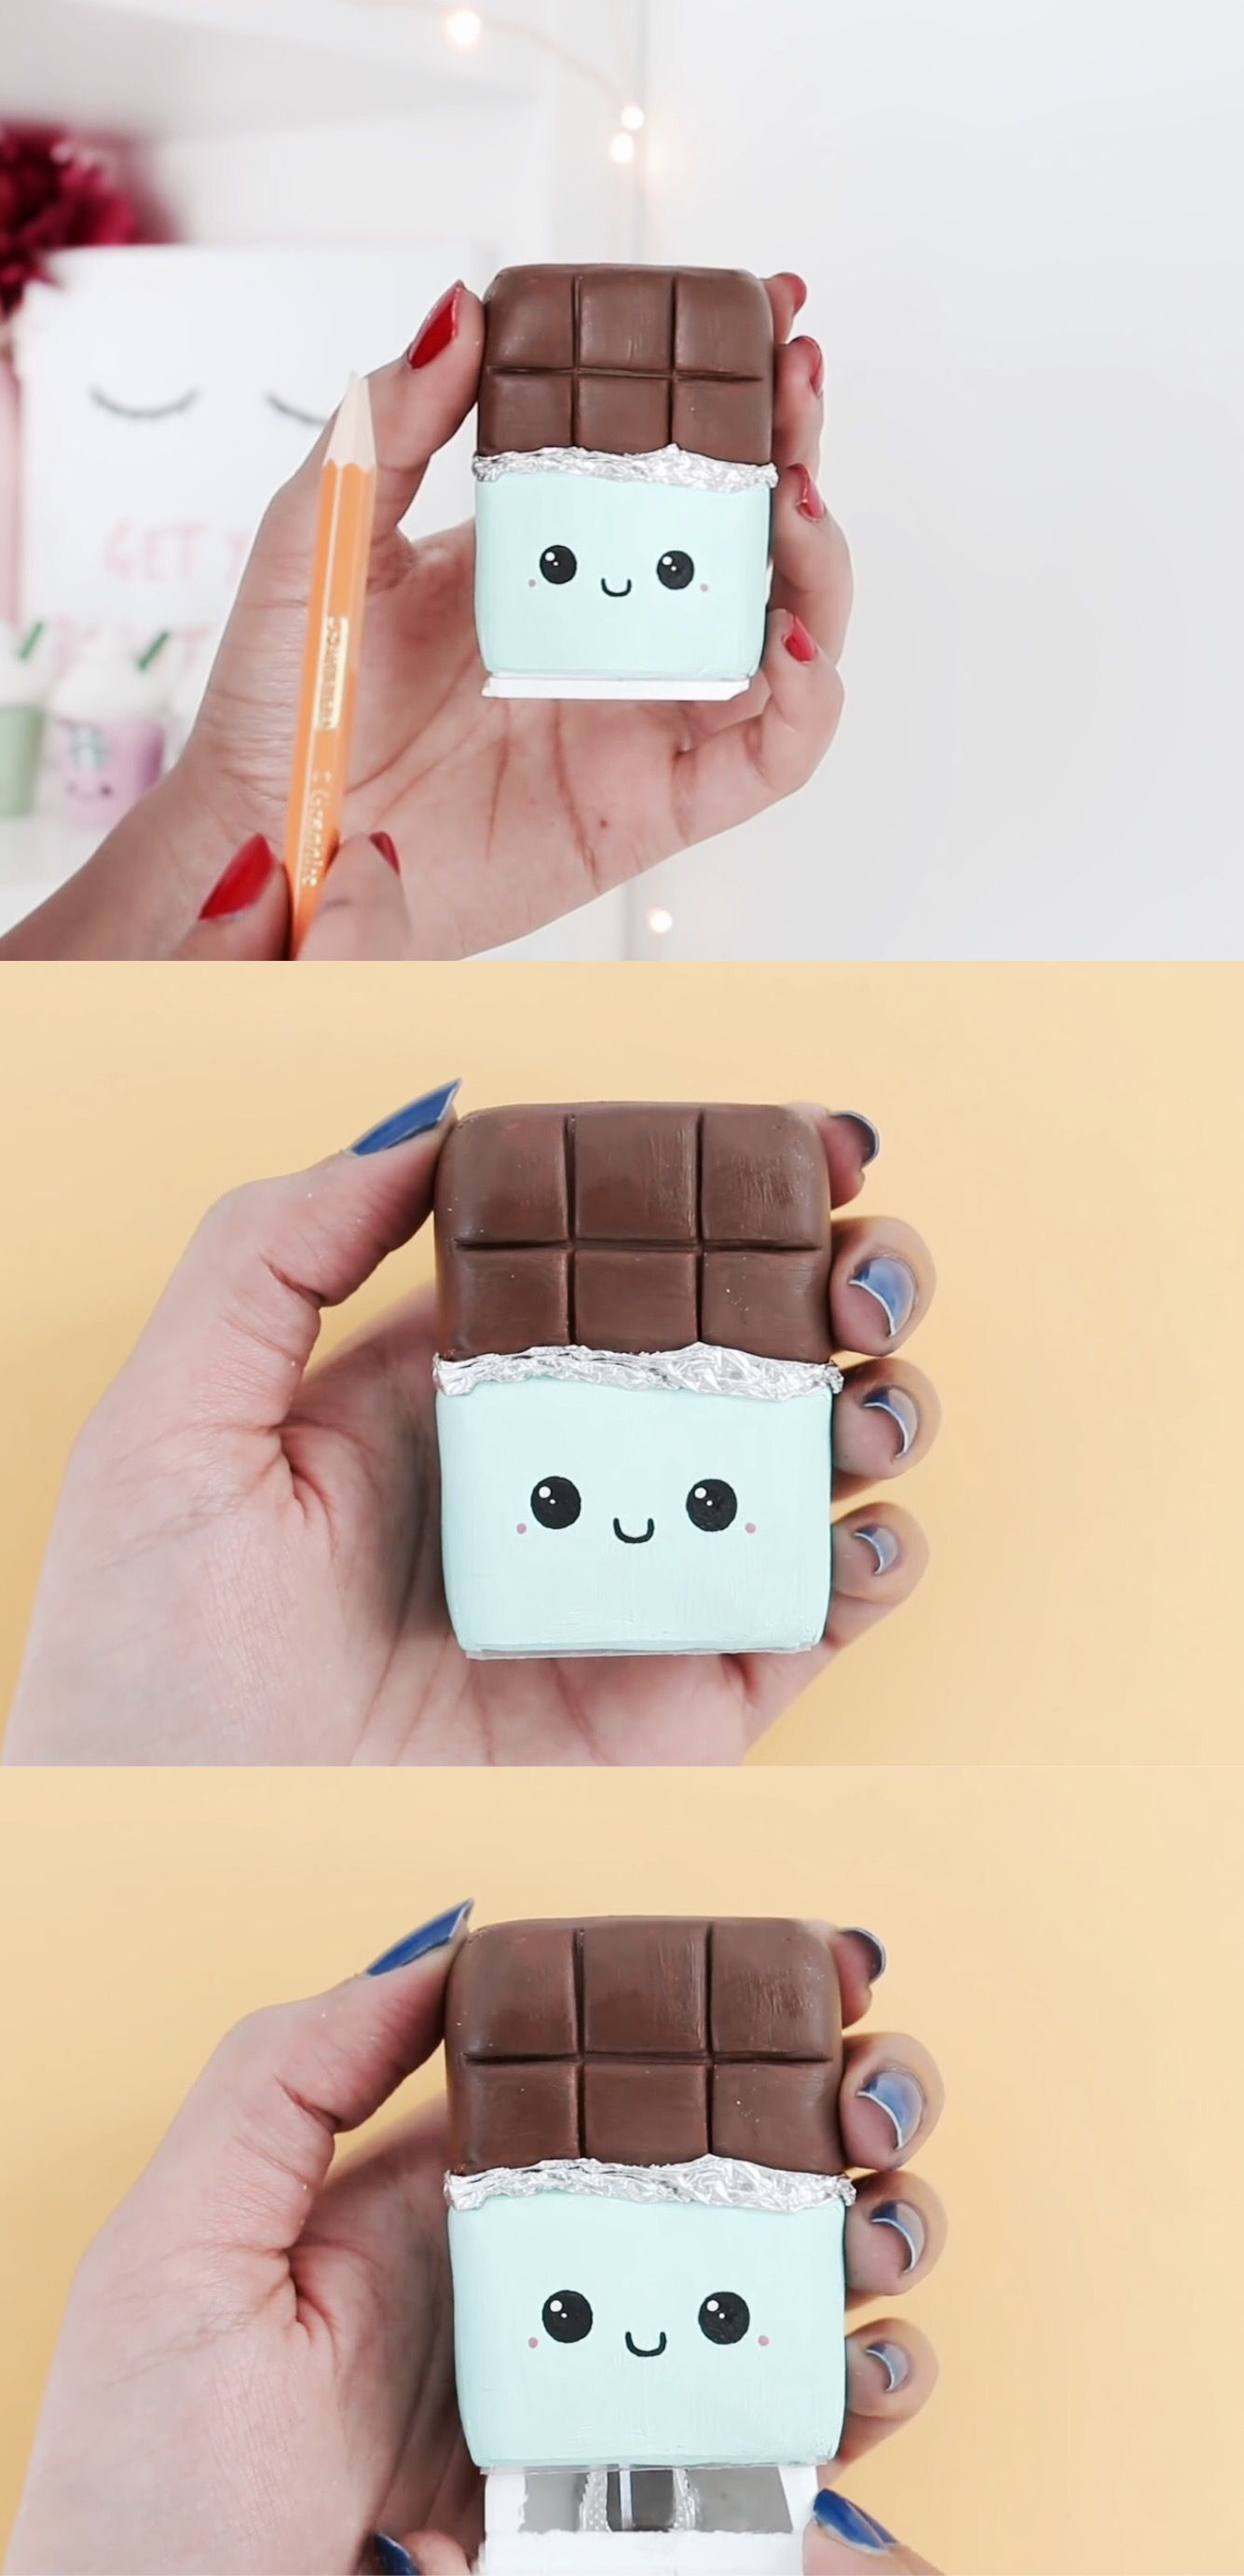 Diy Calendar Nim C : Chocolate sharpener part nim c crafts and diy